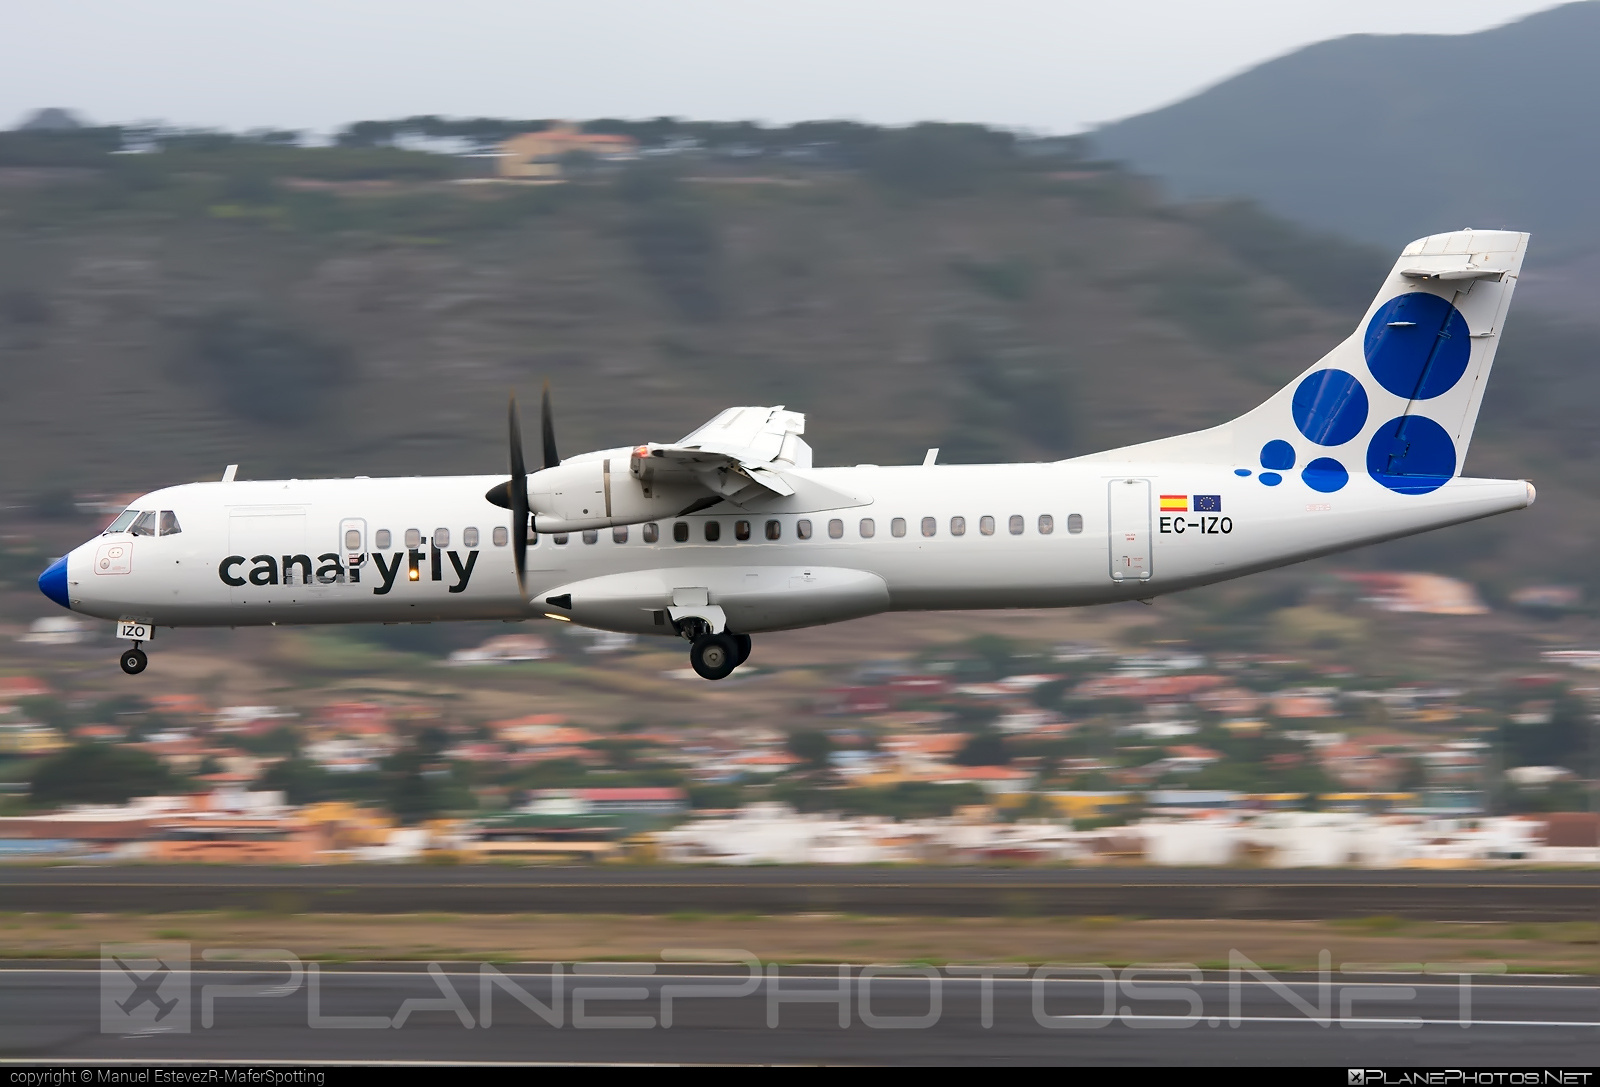 ATR 72-212A - EC-IZO operated by Canaryfly #atr